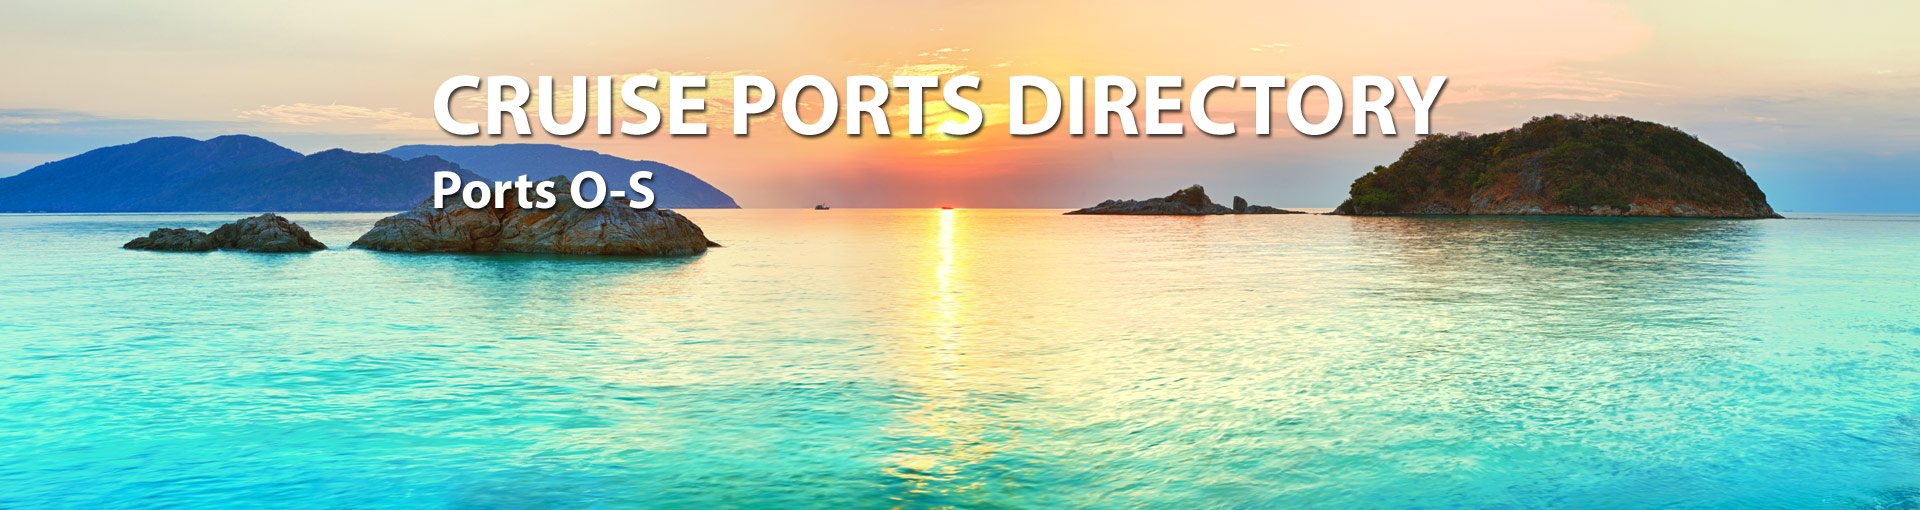 Cruise Ports Directory, Page 4